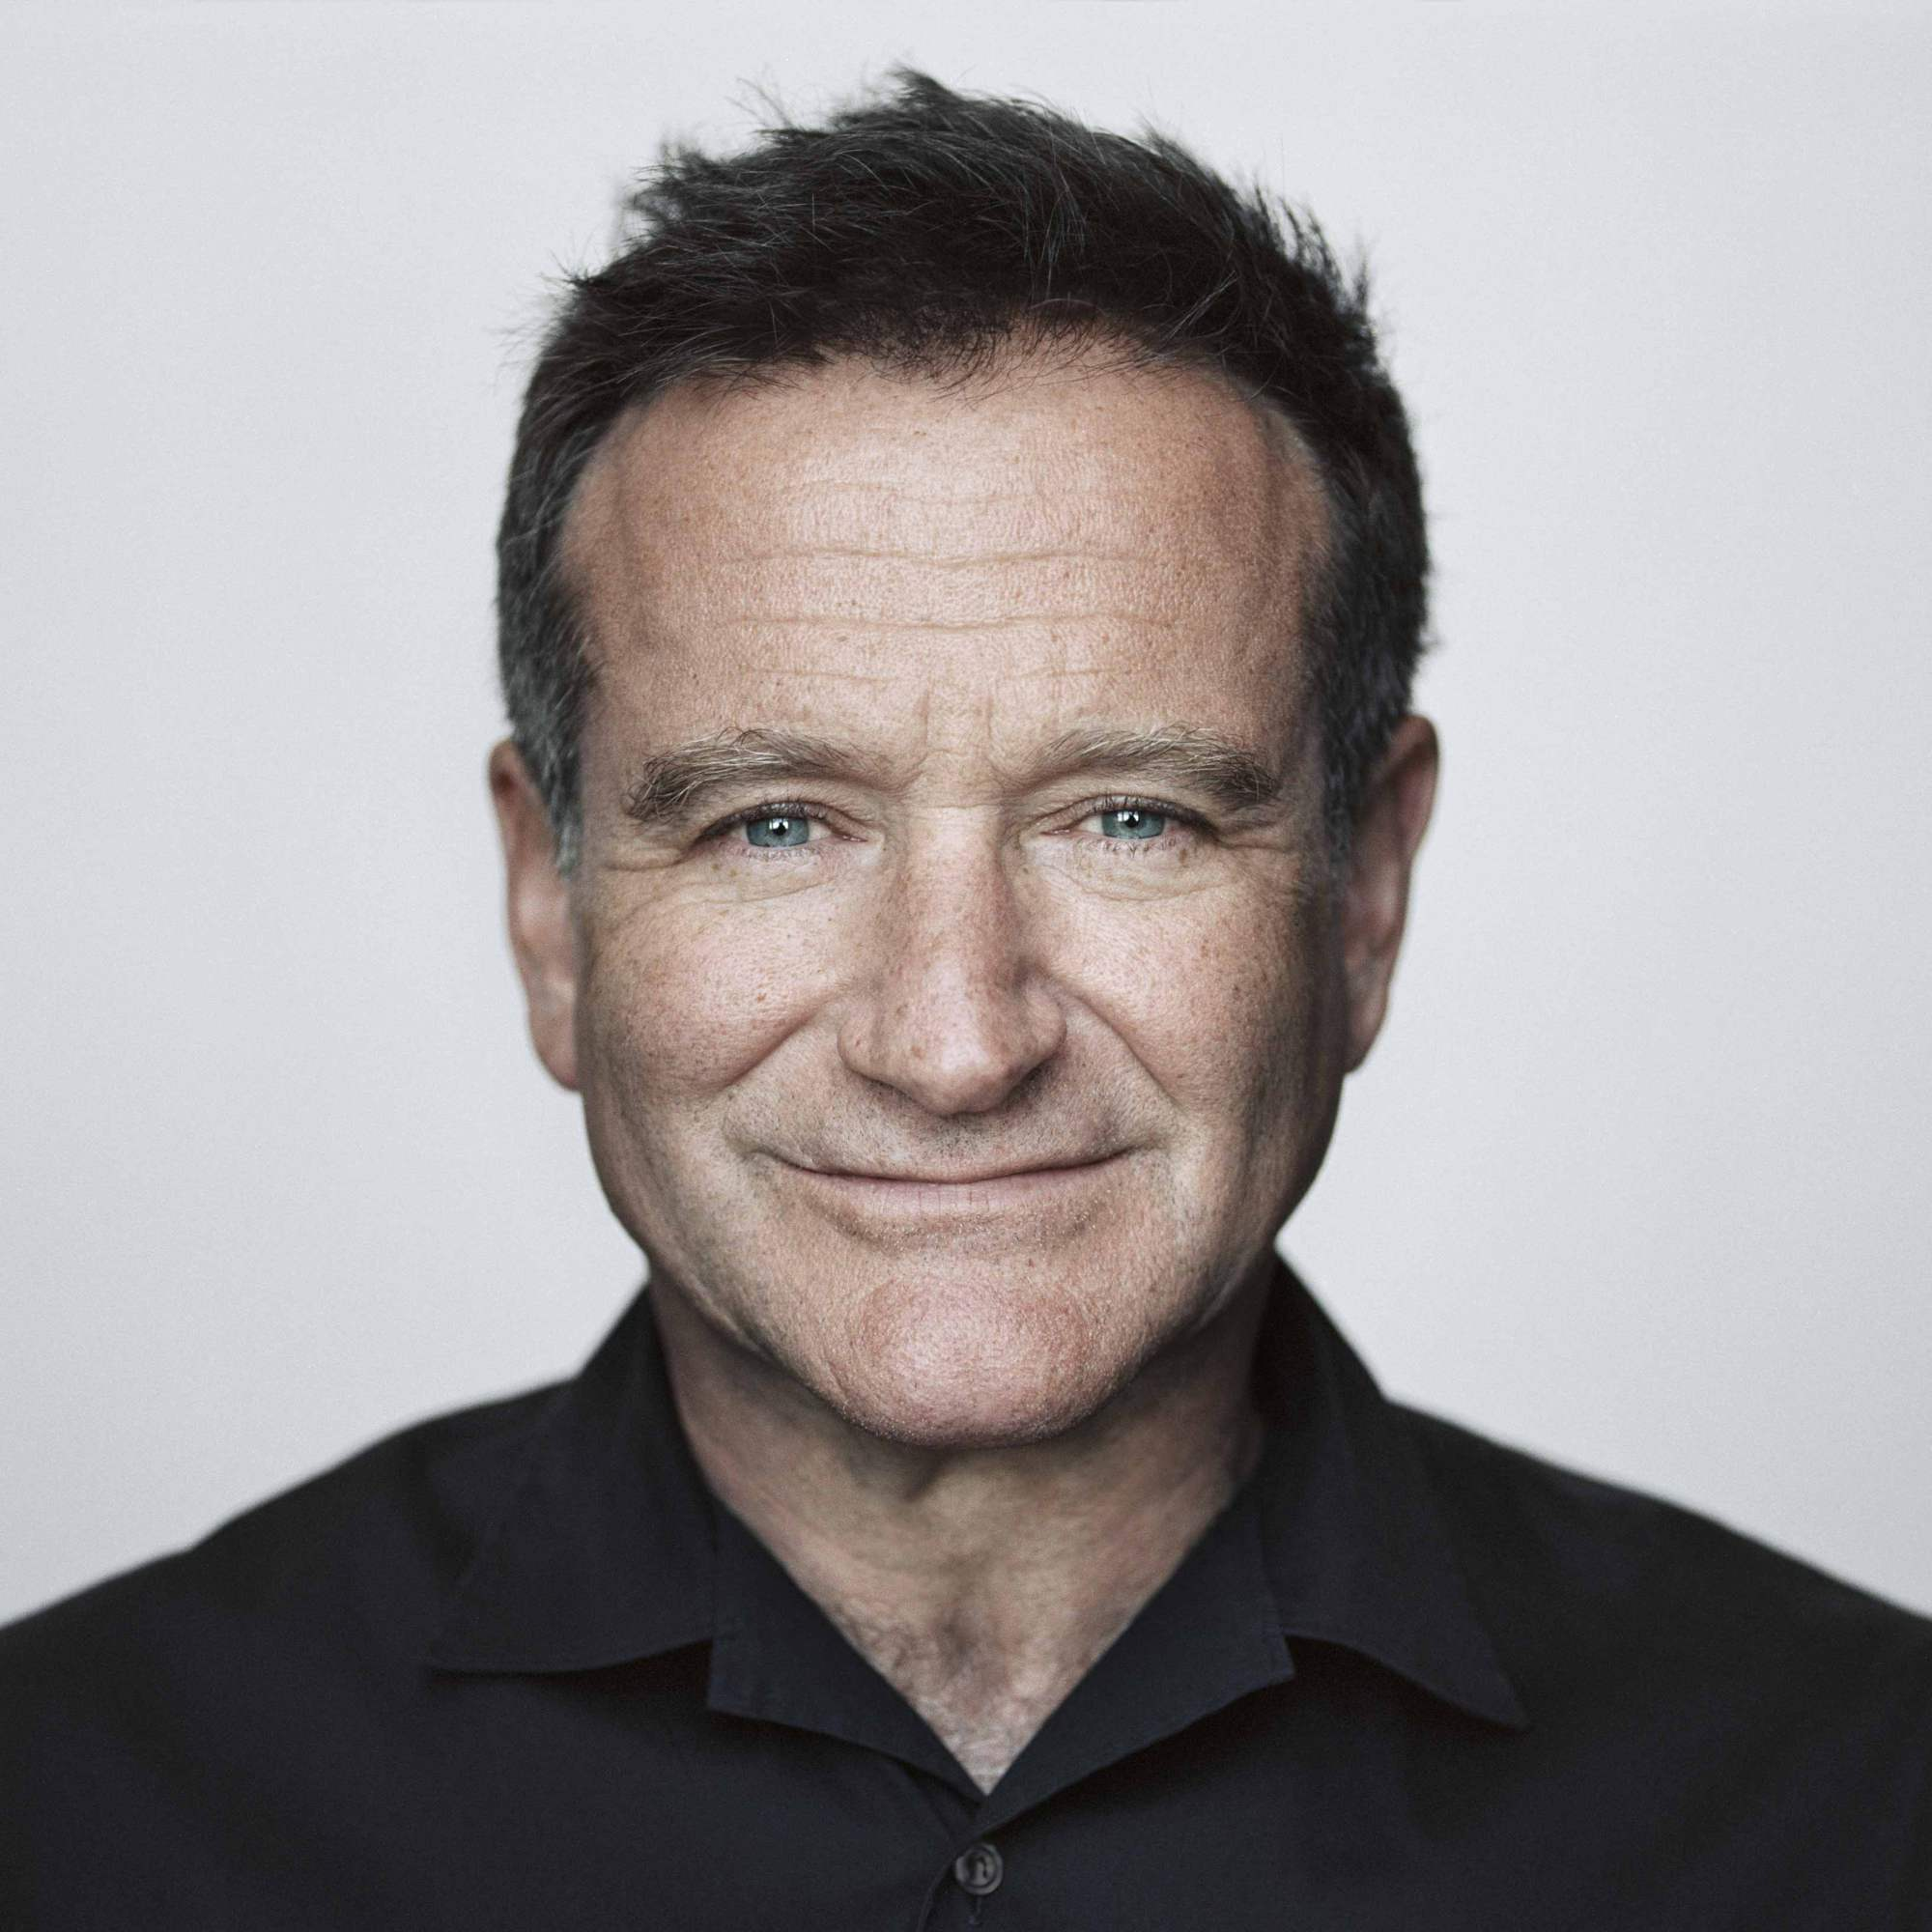 Robin Williams transferred the rights to use his image to a charity fund 03/31/2015 34